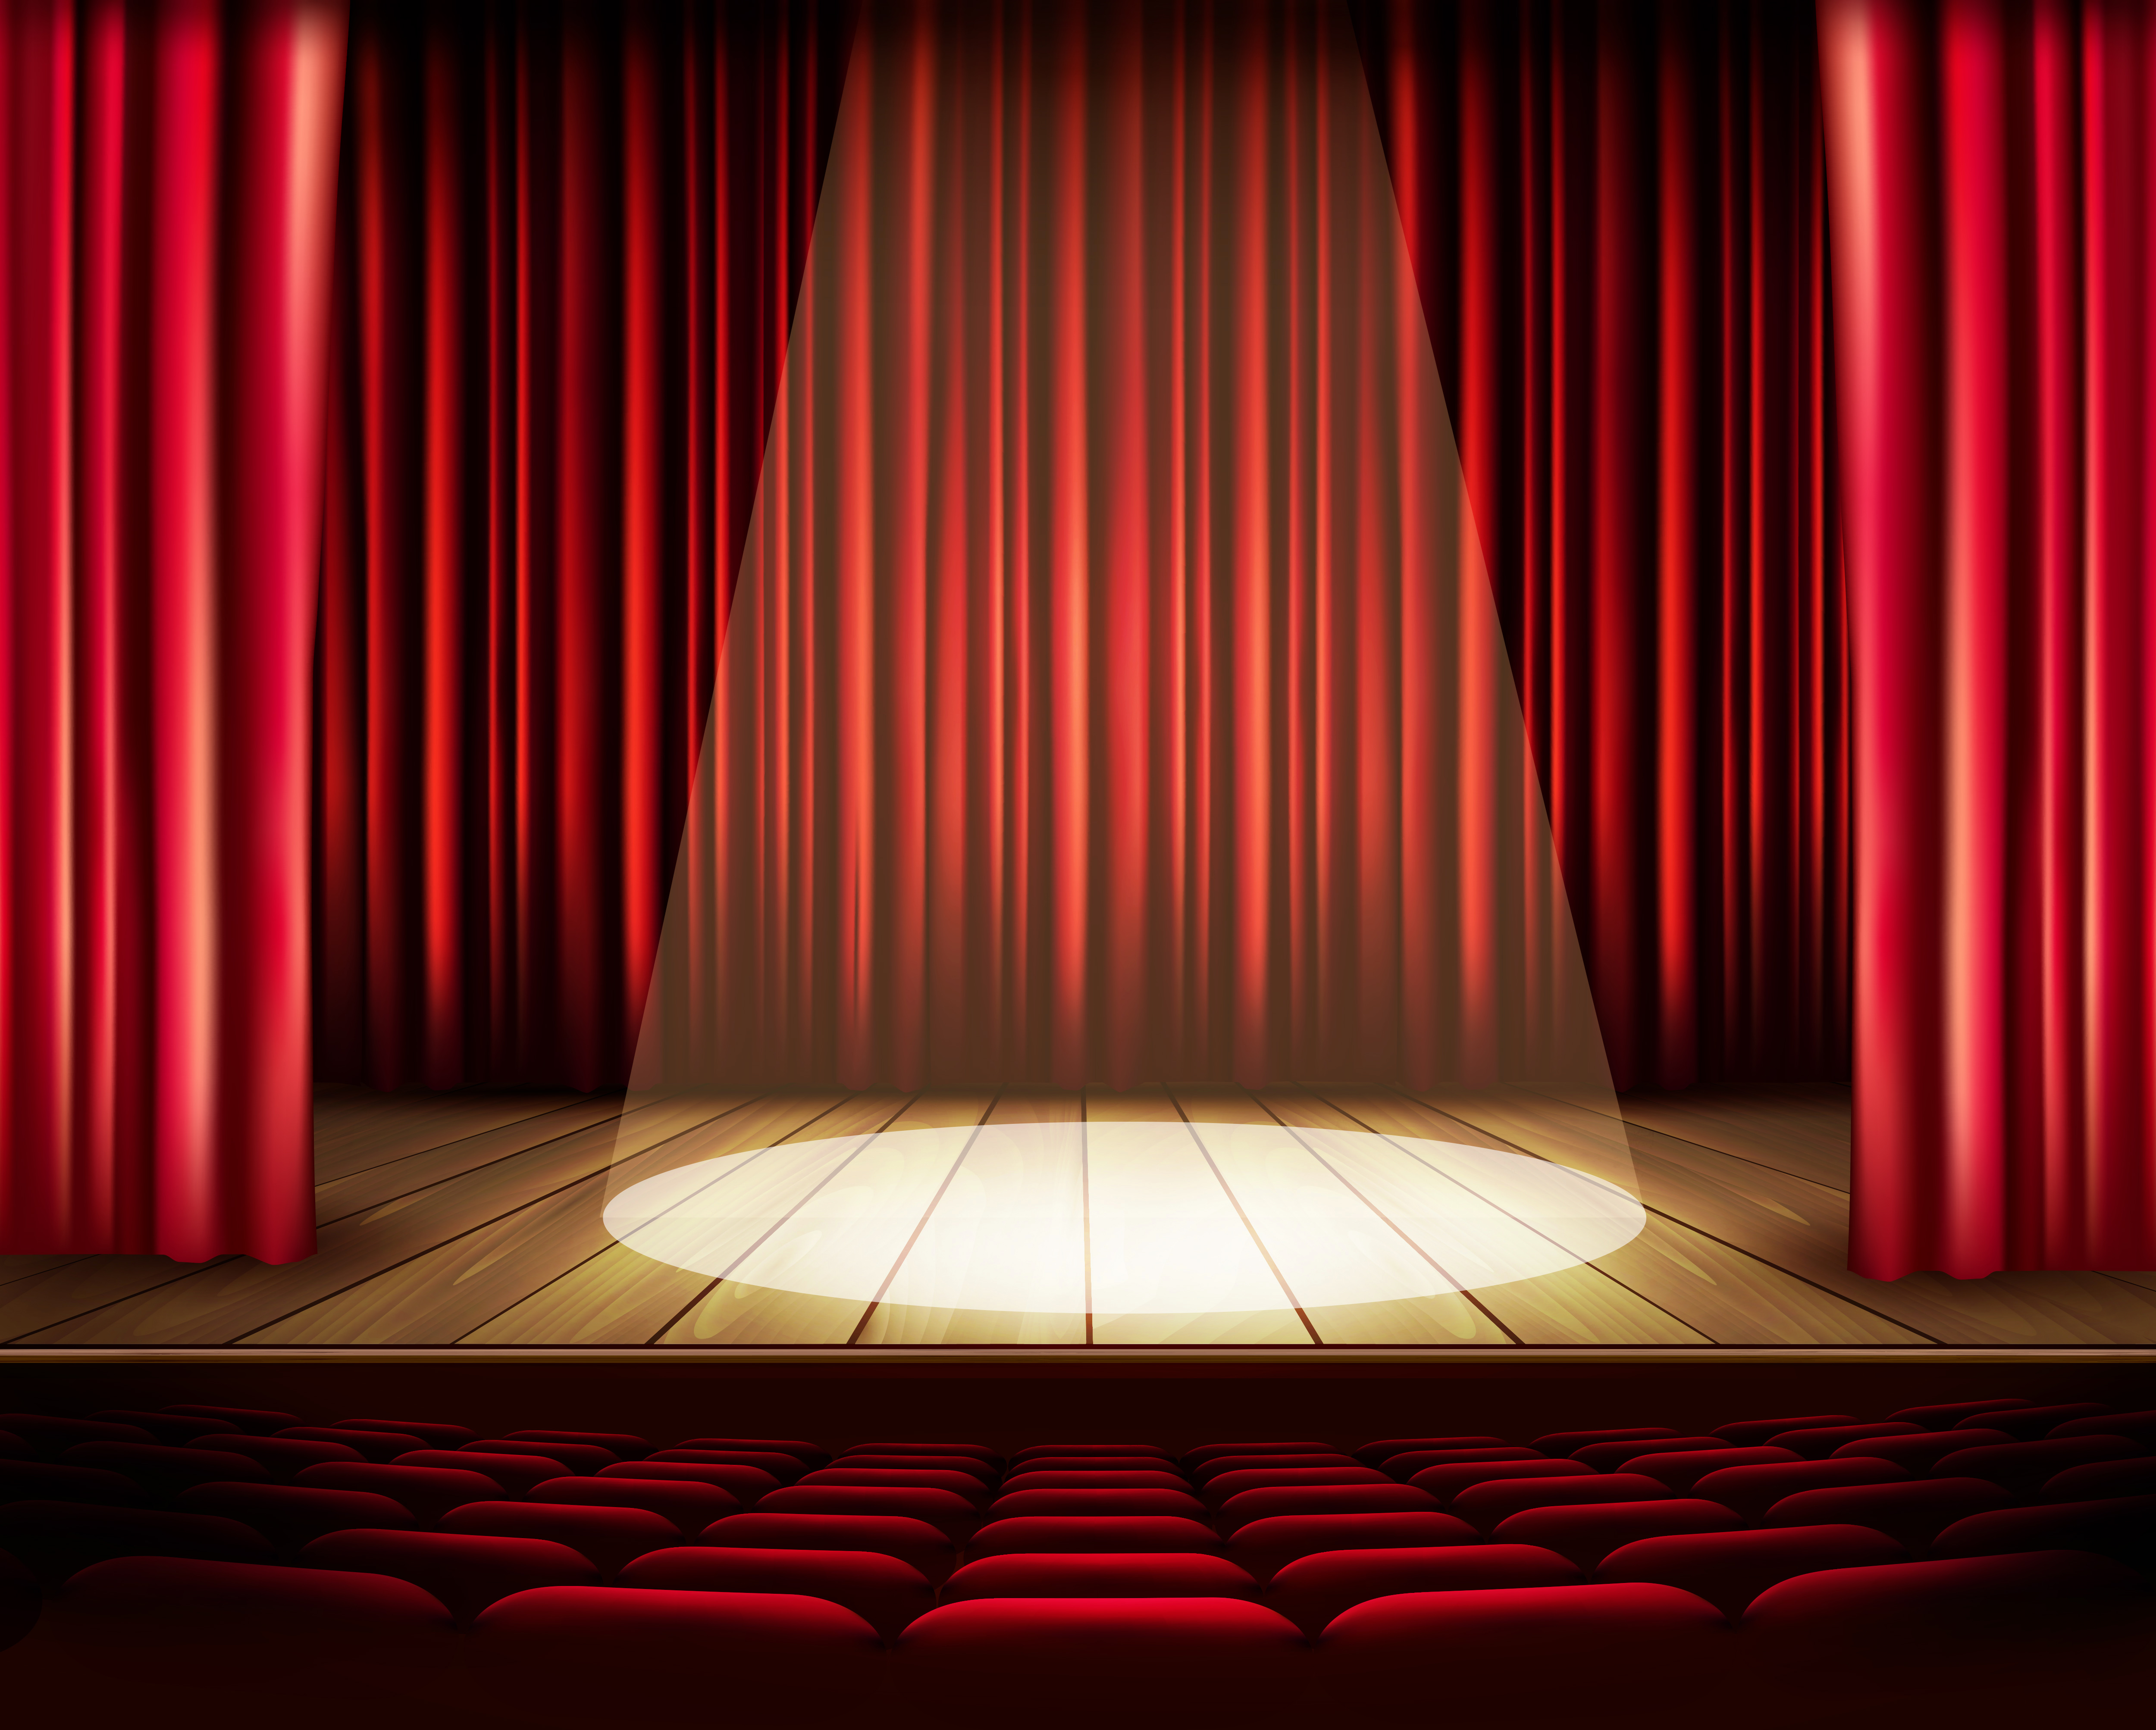 Background clipart stage. Theater gallery yopriceville high